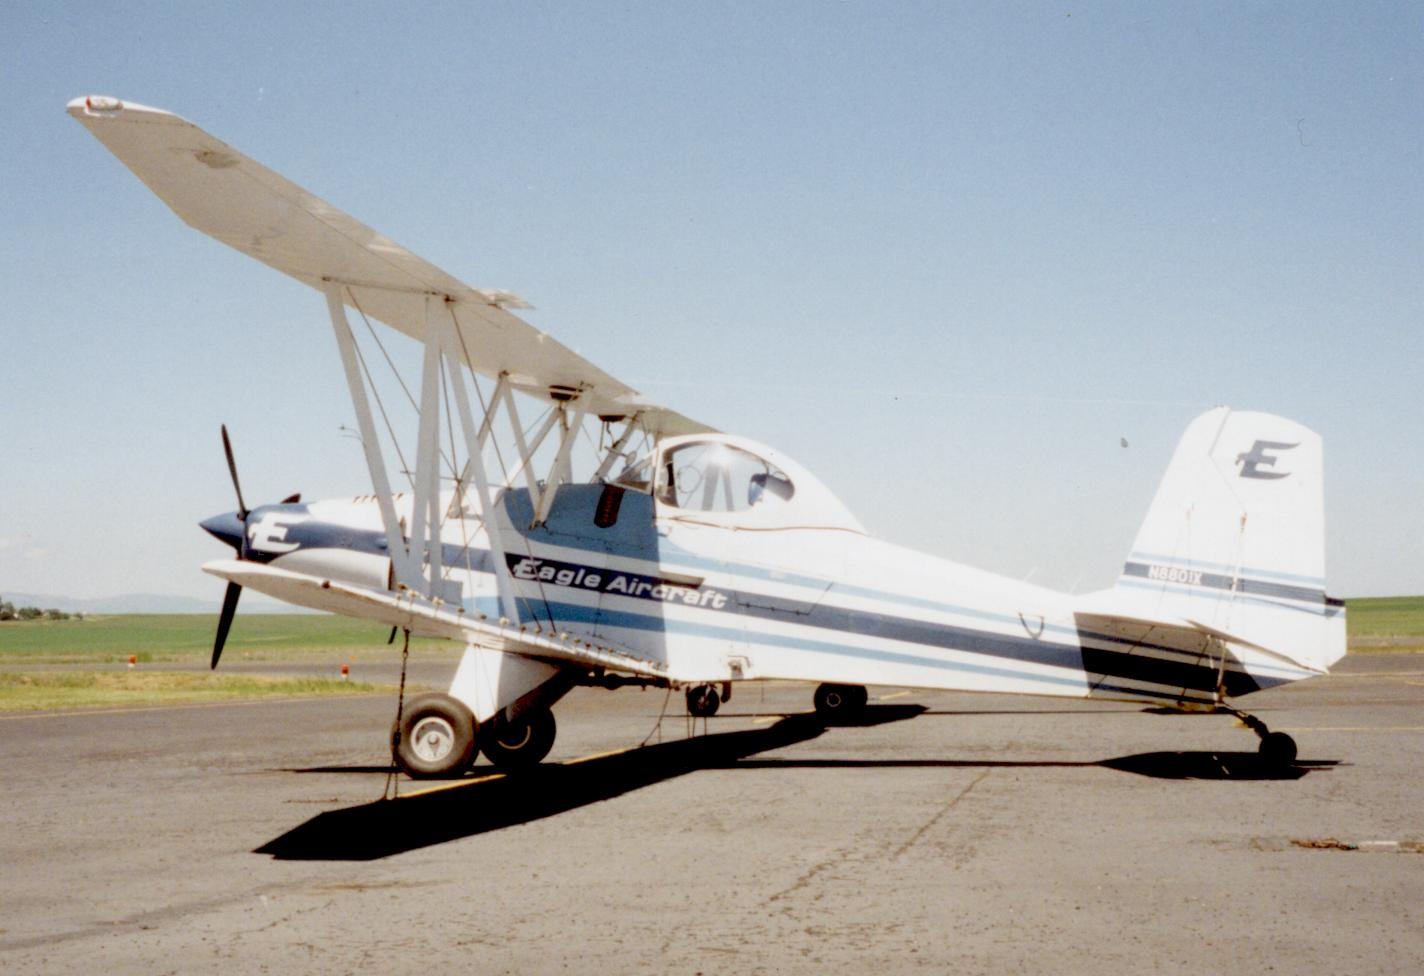 Dean Wilson's Eagle Aircraft Company was known for producing excellent cropdusters.